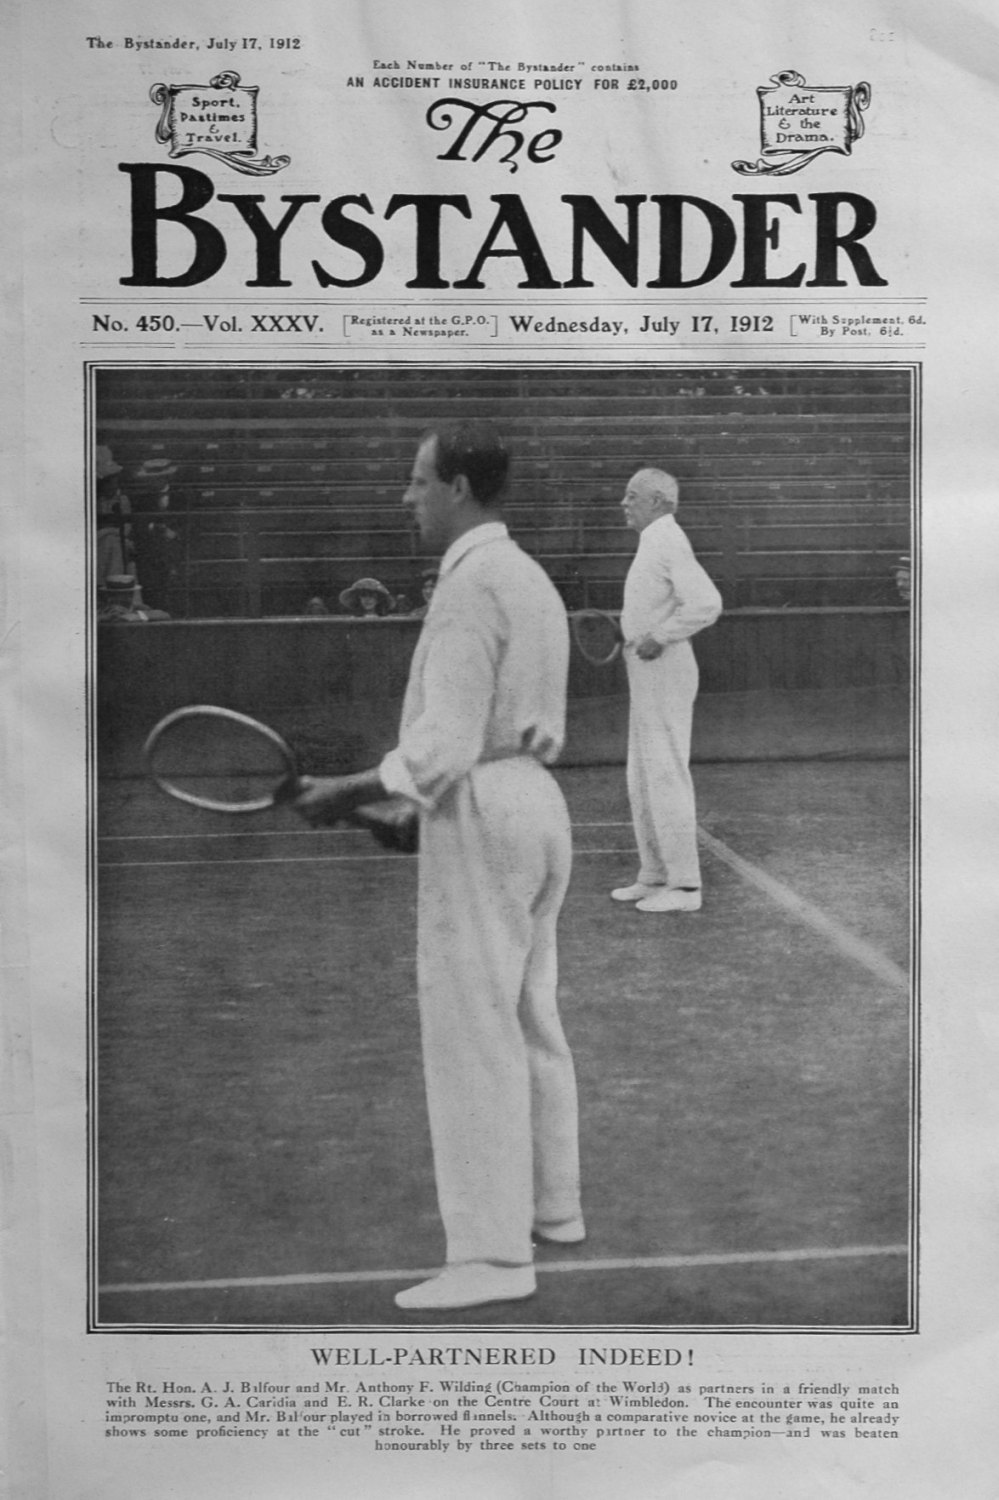 The Bystander July 17th 1912.